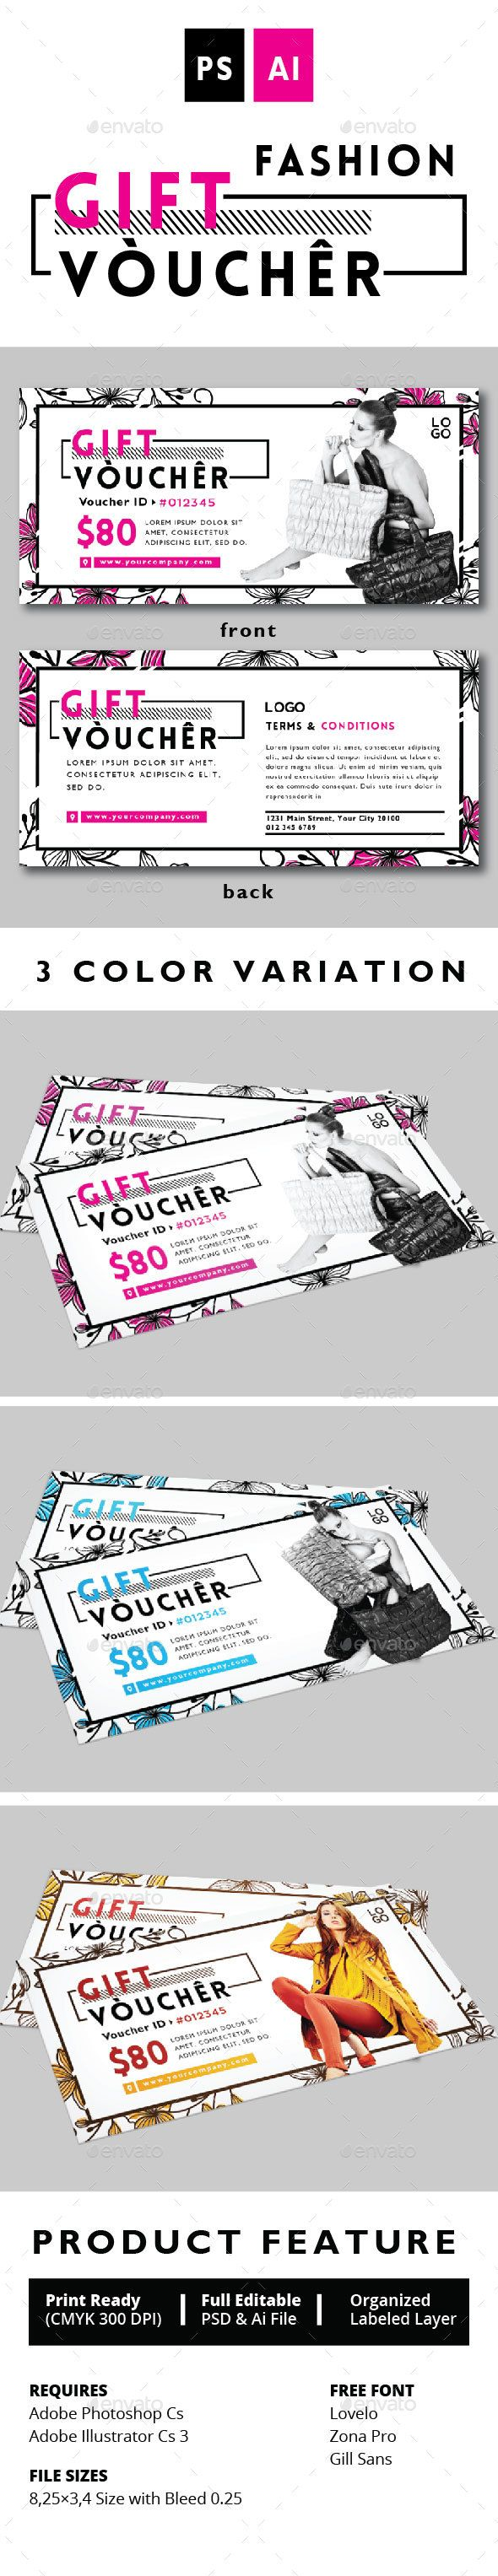 FASHION GIFT VOUCHER Design Template Vol. 2 - Print Templates PSD. Download here: https://graphicriver.net/item/fashion-gift-voucher-vol-2/17039385?s_rank=274&ref=yinkira